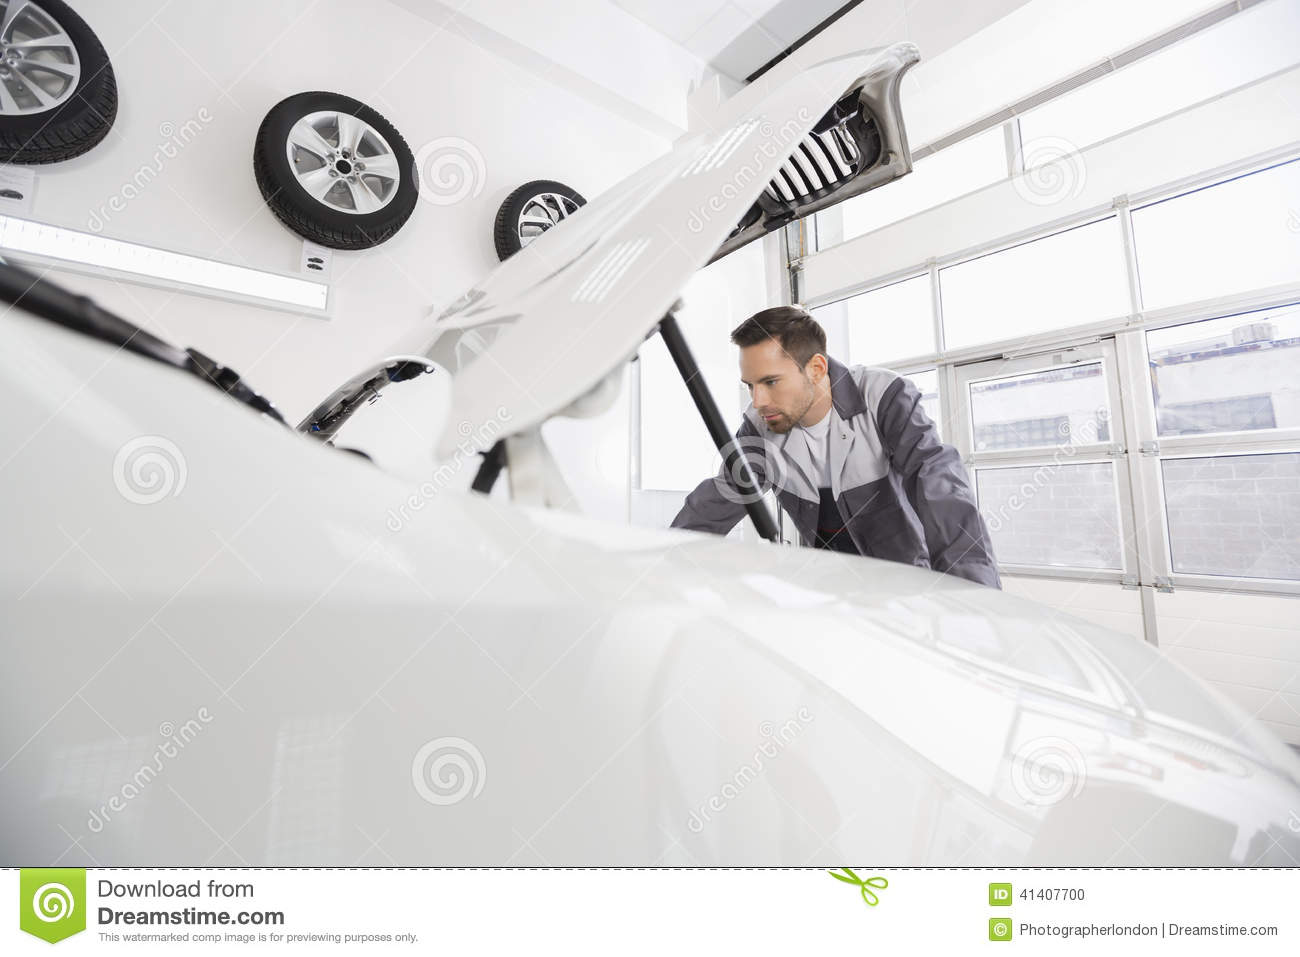 Young male automobile mechanic examining car engine in repair shop